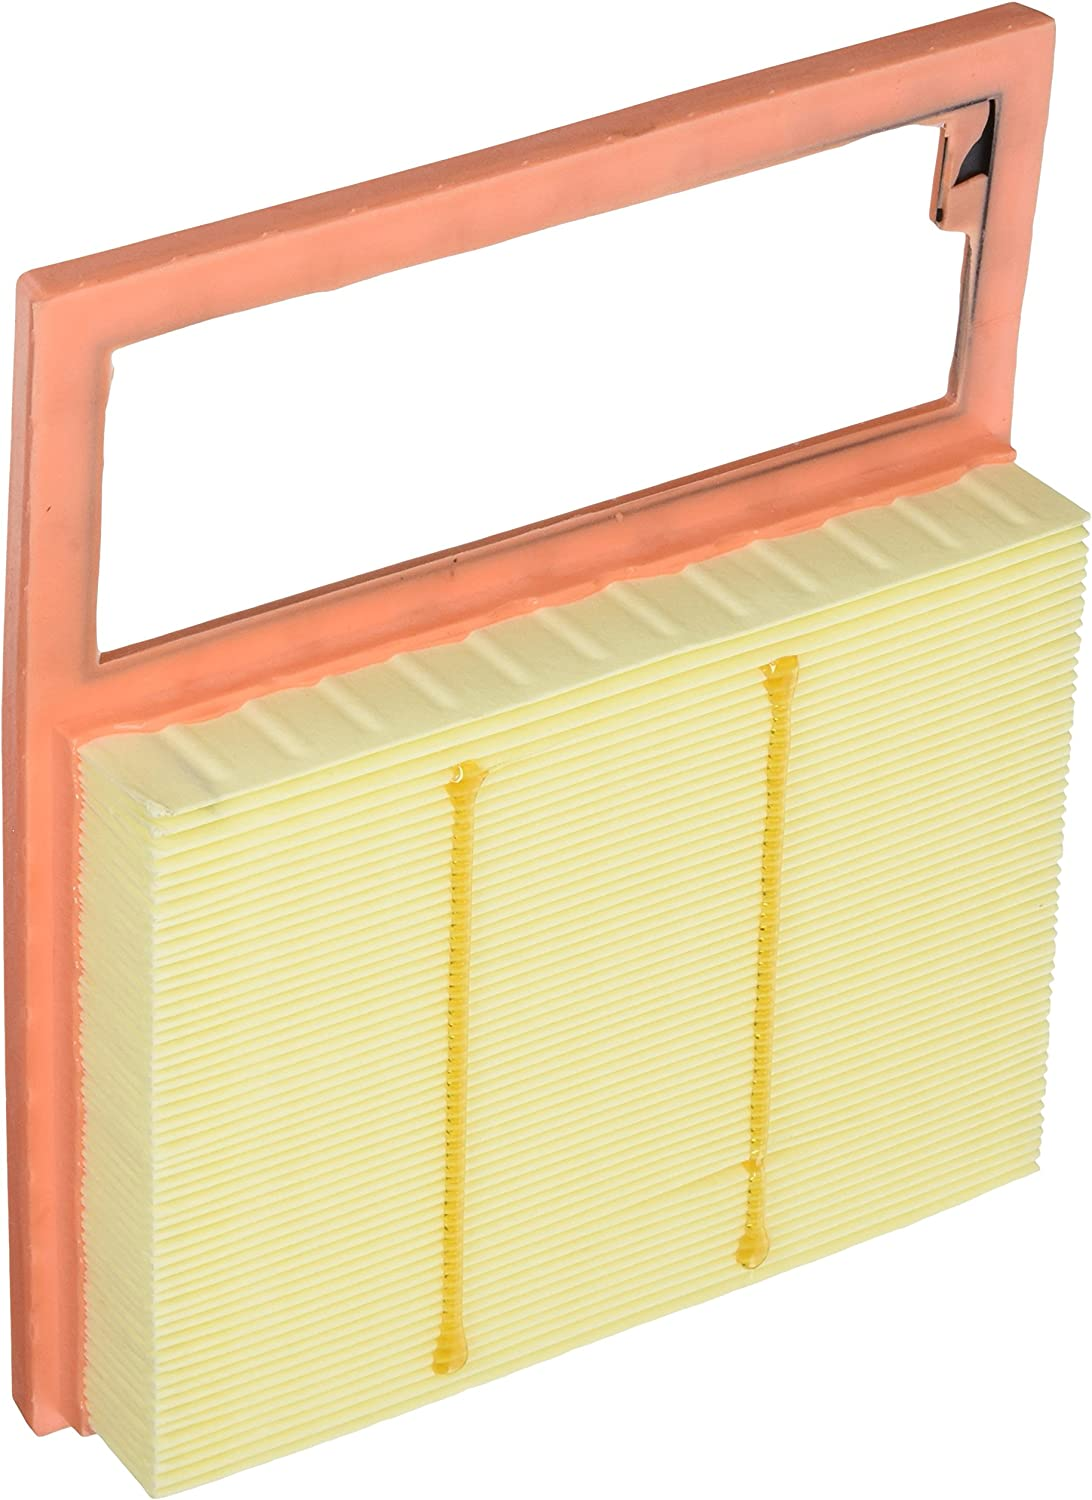 WA10036 Air Filter Panel WIX Filters Pack of 1